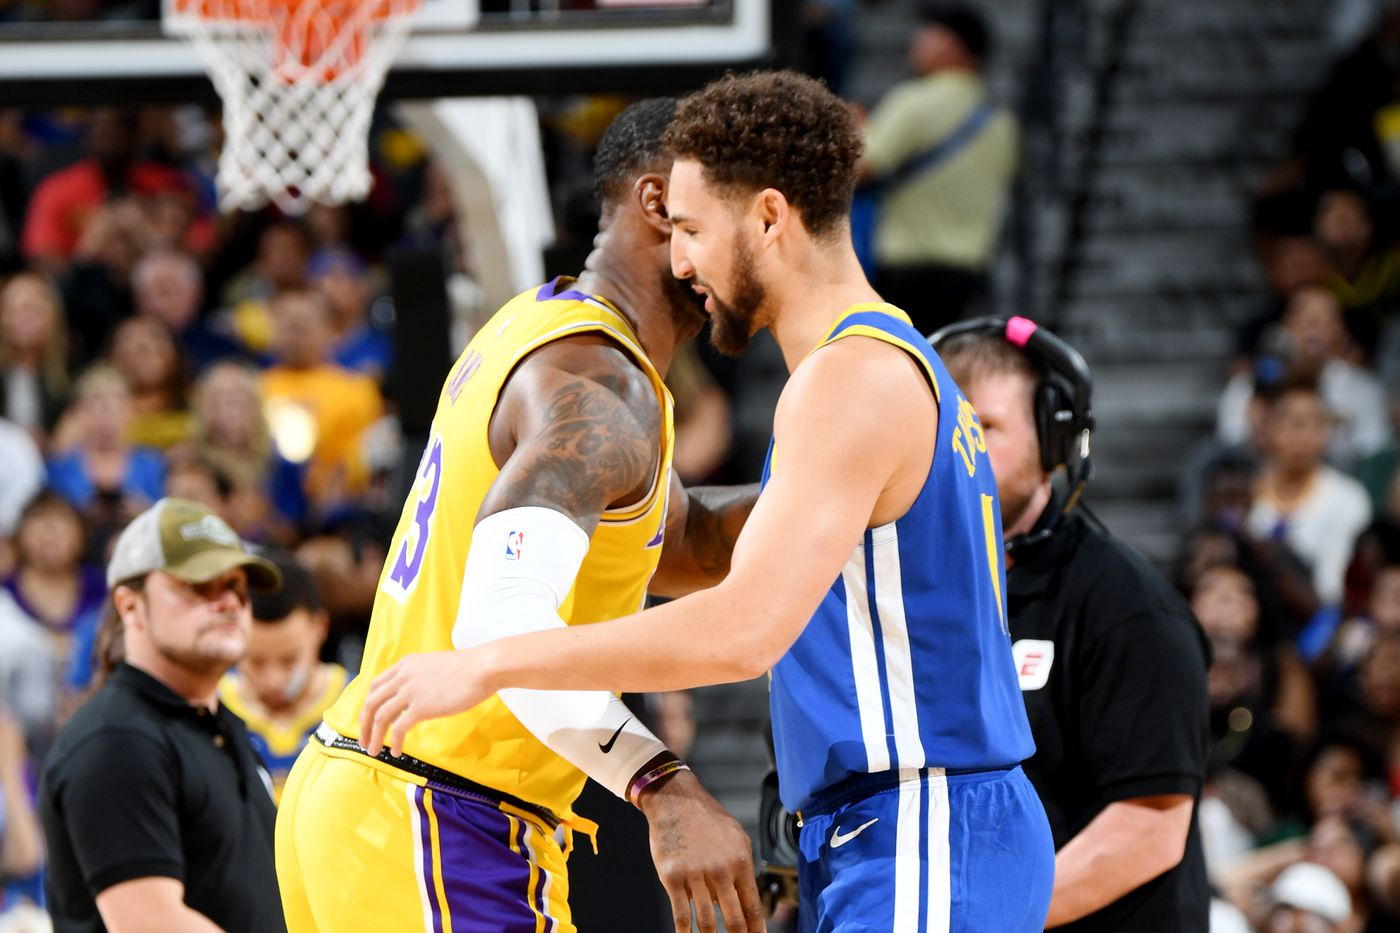 Warriors Lakers 2020 Christmas Dubs in depth: Will 2021 give us a Warriors vs. Lakers playoff